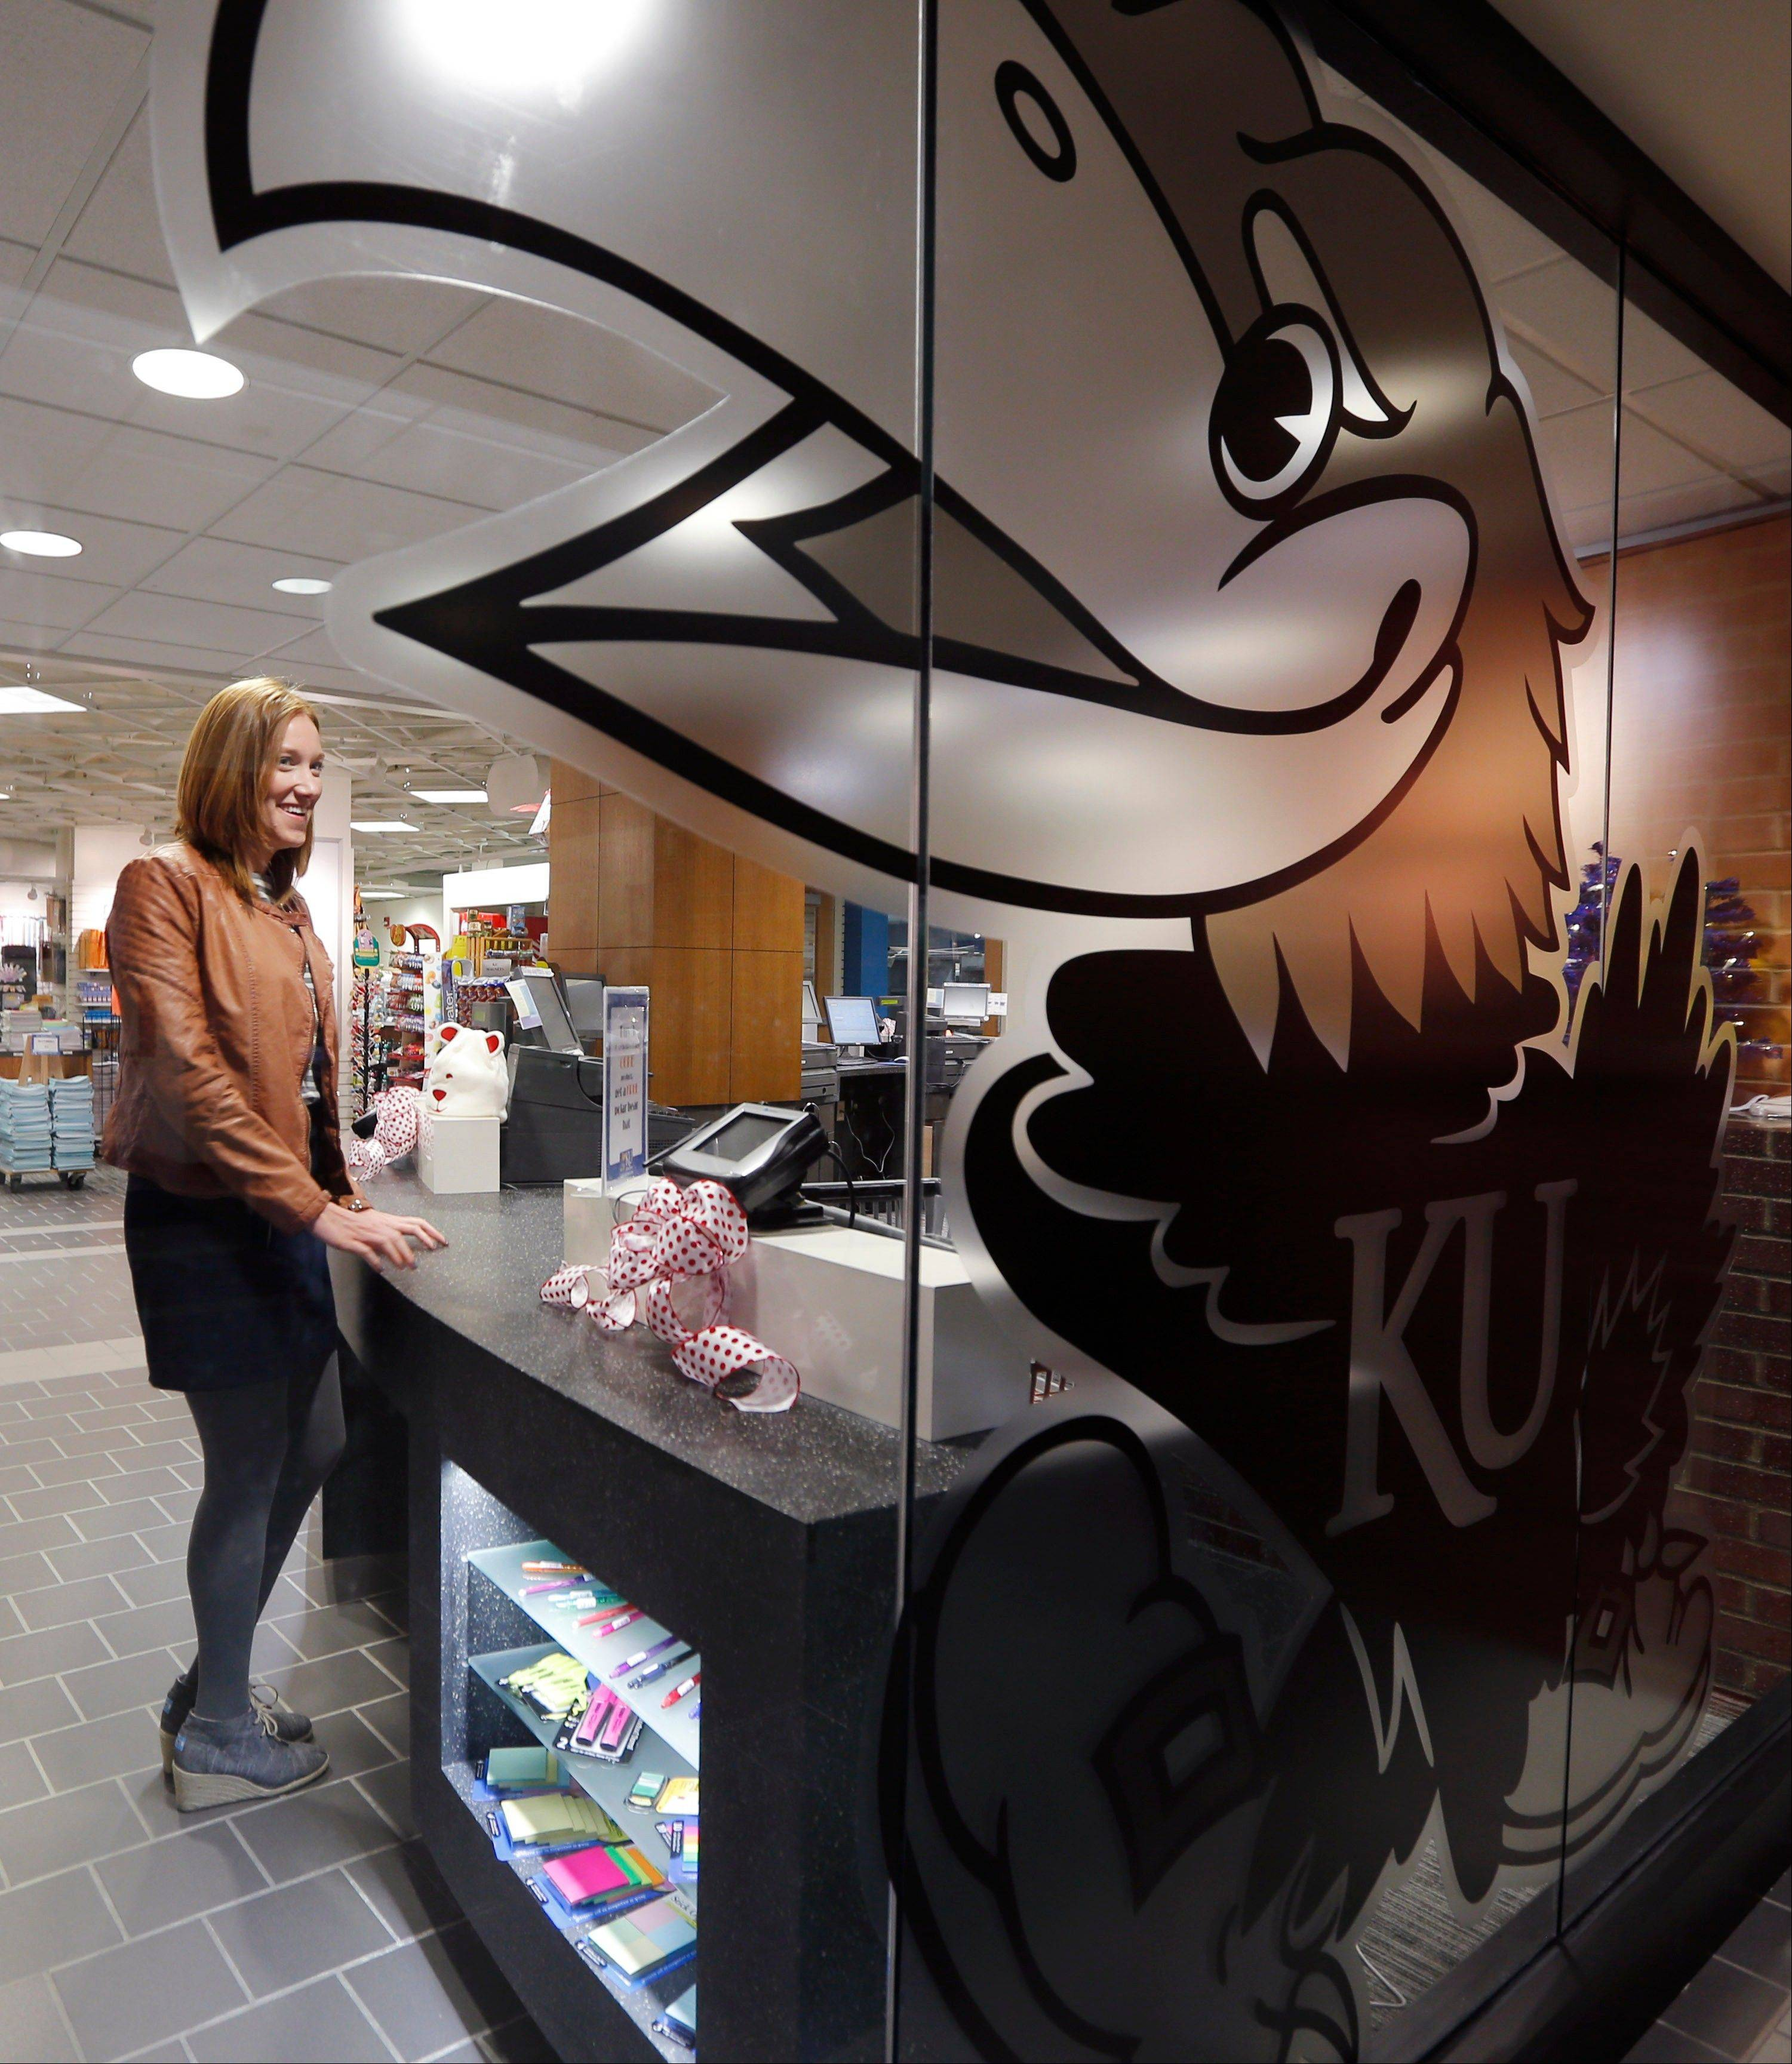 TJane Mahoney stands at a counter in the KU Bookstore on the University of Kansas campus in Lawrence, Kansas. About 320 colleges and universities offered tuition guarantees during the 2012-13 school year, according to an analysis of U.S. Department of Education data done by the National Association of Student Financial Aid Administrators. The schools represent about 6.7 percent of the nation's nearly 4,800 institutions where students receive federal financial aid. Tuition rates for freshmen are guaranteed for four years at Kansas.